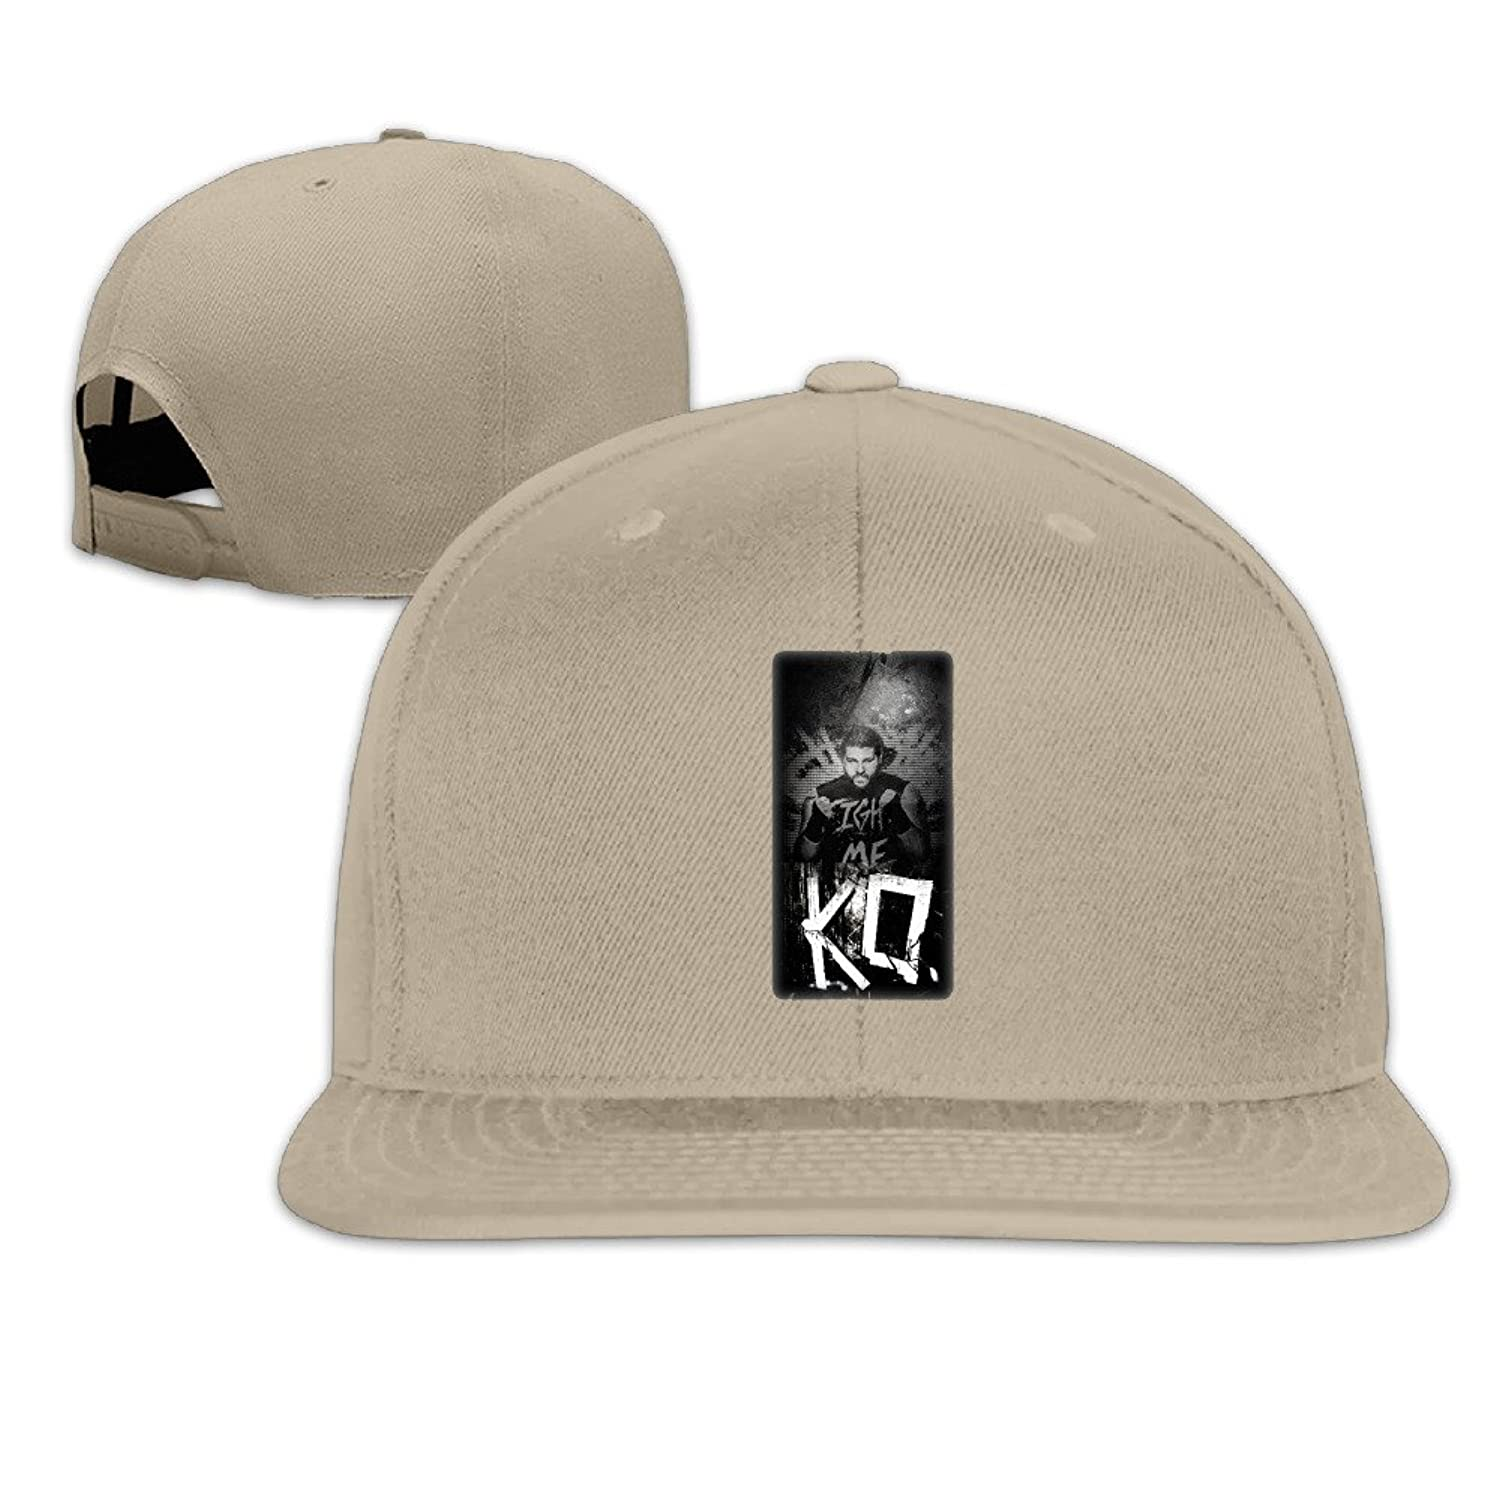 White Fashion Knit Caps Kevin Owens Wwe For Male